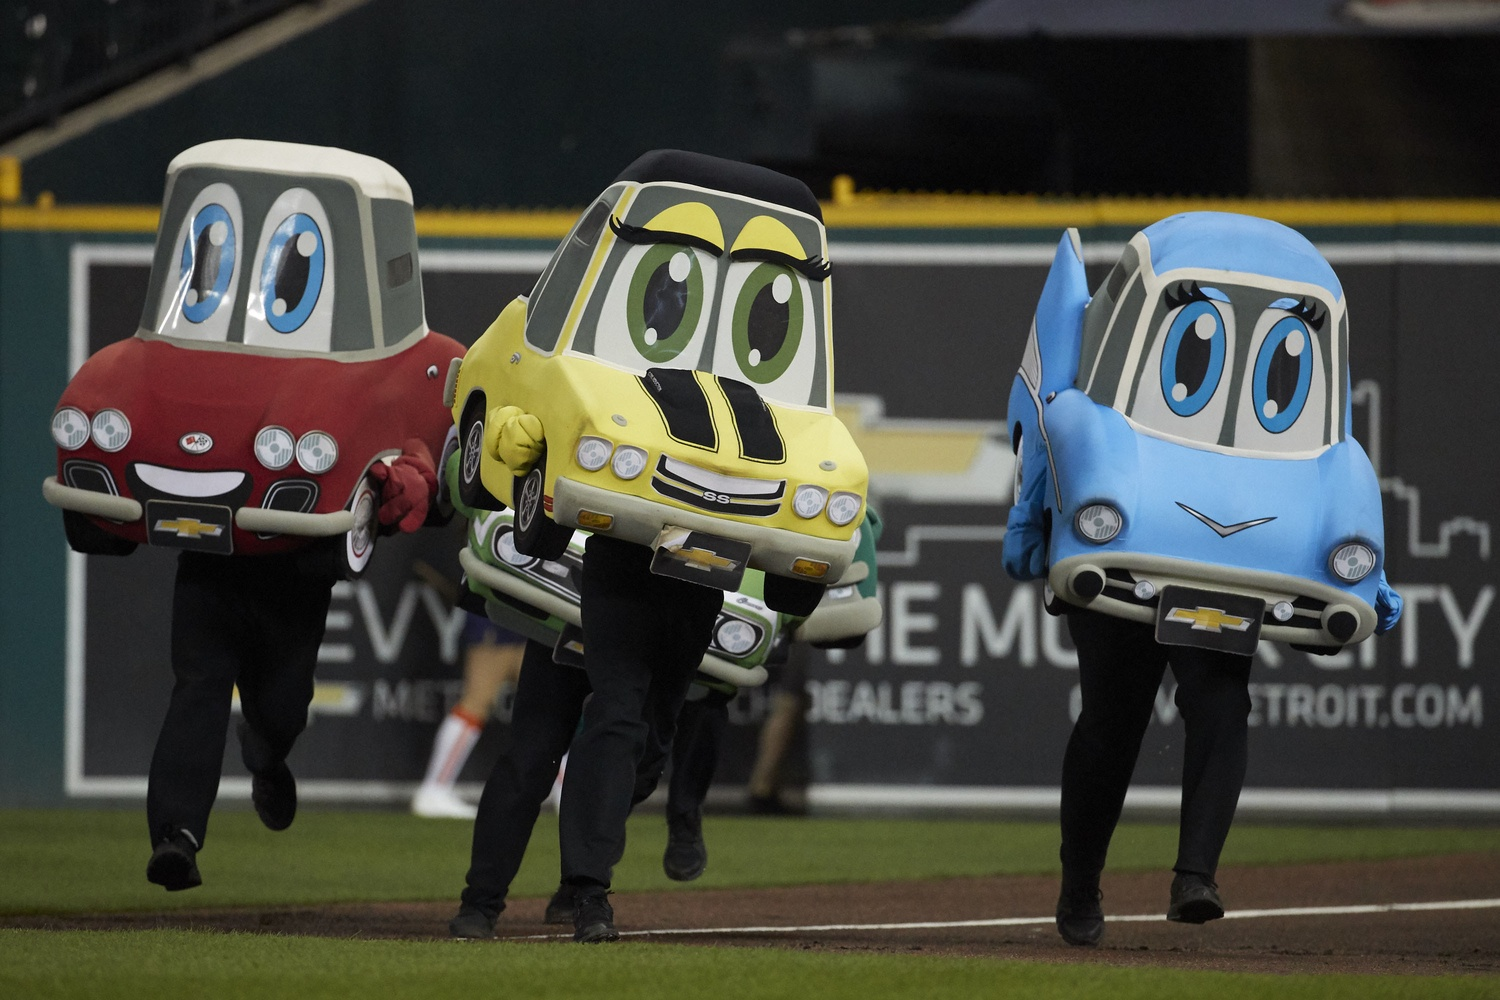 Sep 5, 2017; Detroit, MI, USA; Motor City Wheels Mascot Race takes place during the fourth inning of the game between the Detroit Tigers and the Kansas City Royals at Comerica Park. Mandatory Credit: Rick Osentoski-USA TODAY Sports